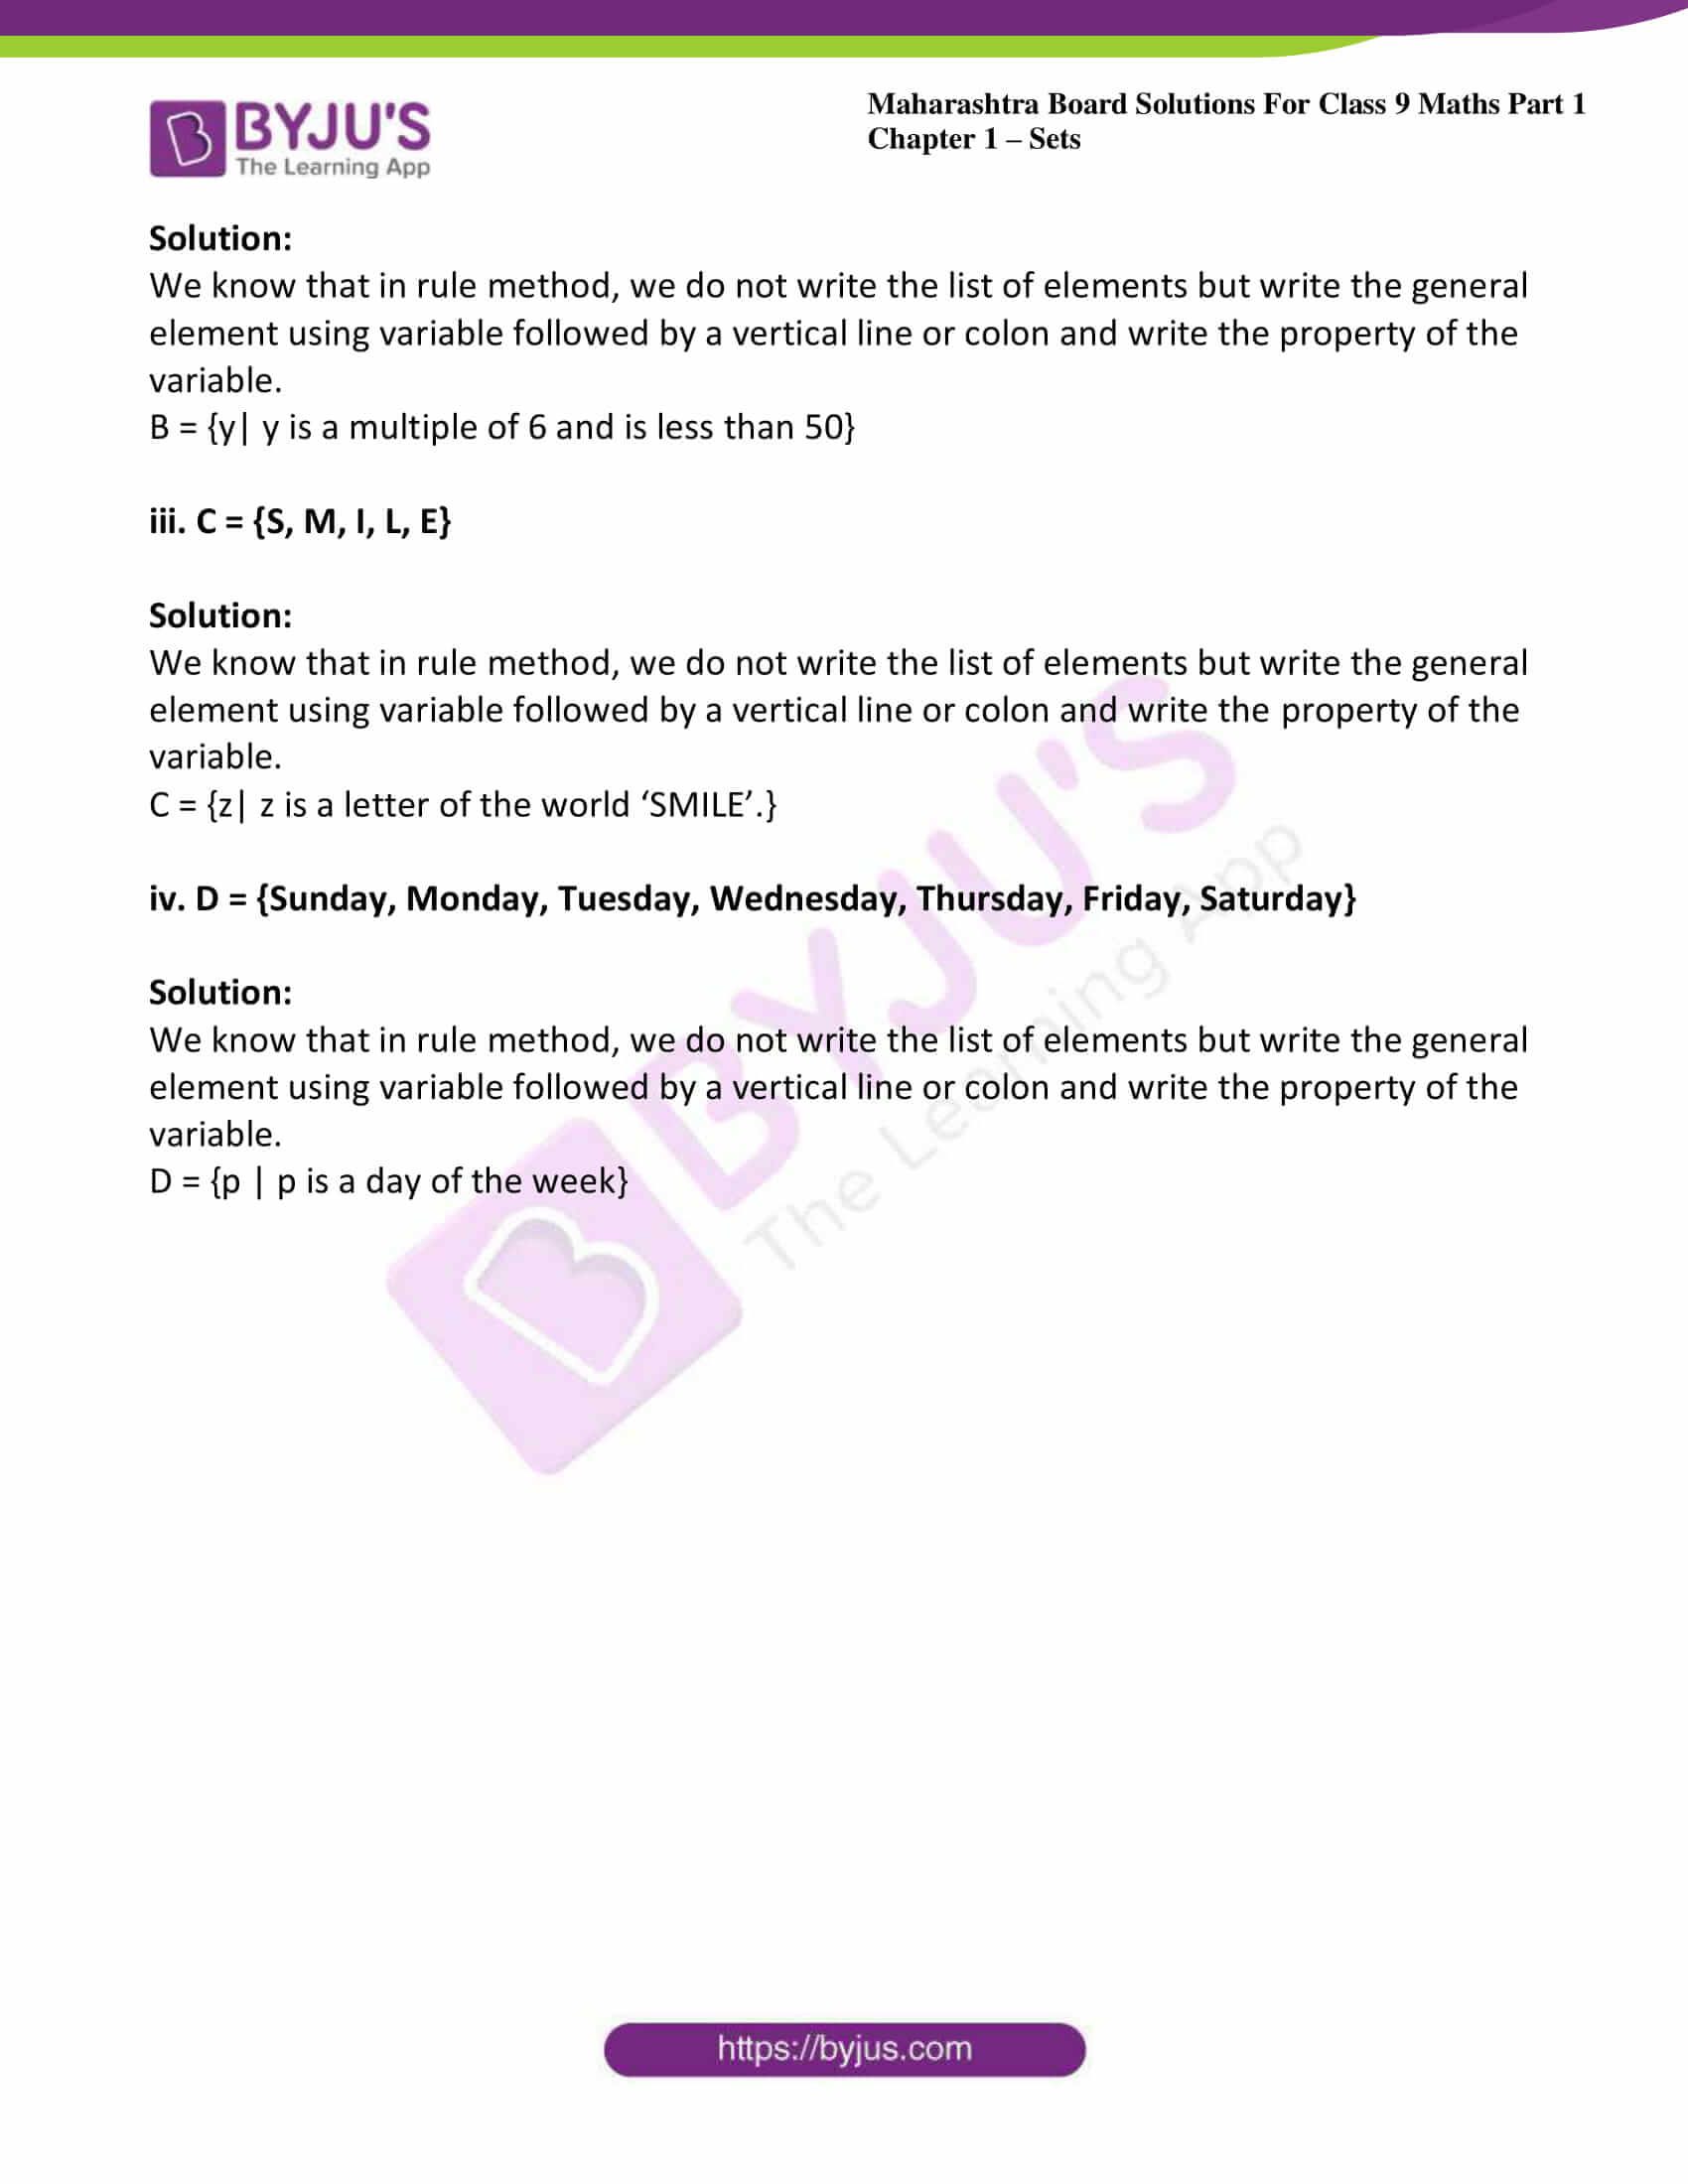 msbshse sol class 9 maths part 1 chapter 1 sets 04